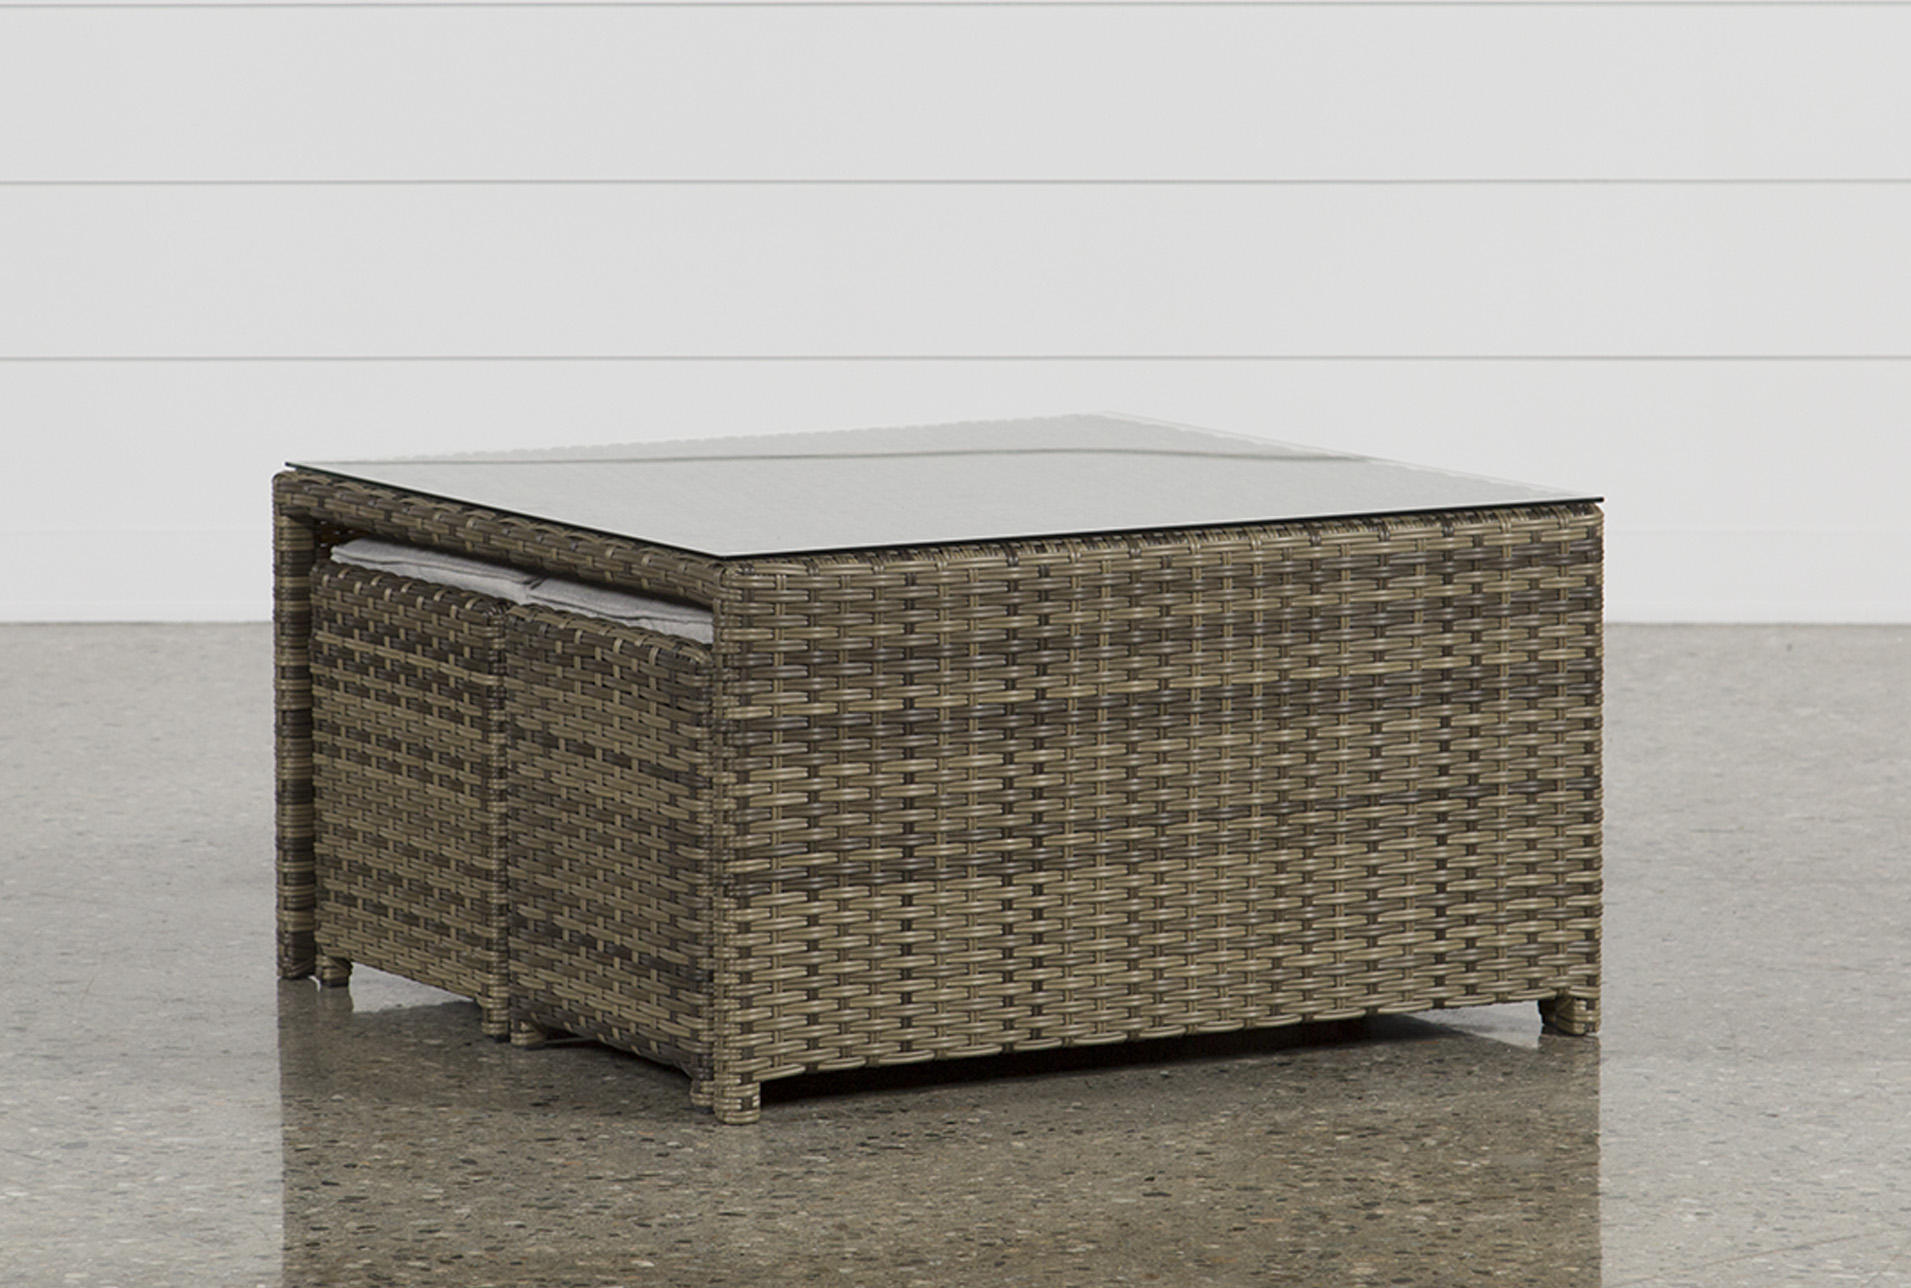 Superieur Outdoor Aventura Cocktail Table W/Two Ottomans (Qty: 1) Has Been  Successfully Added To Your Cart.